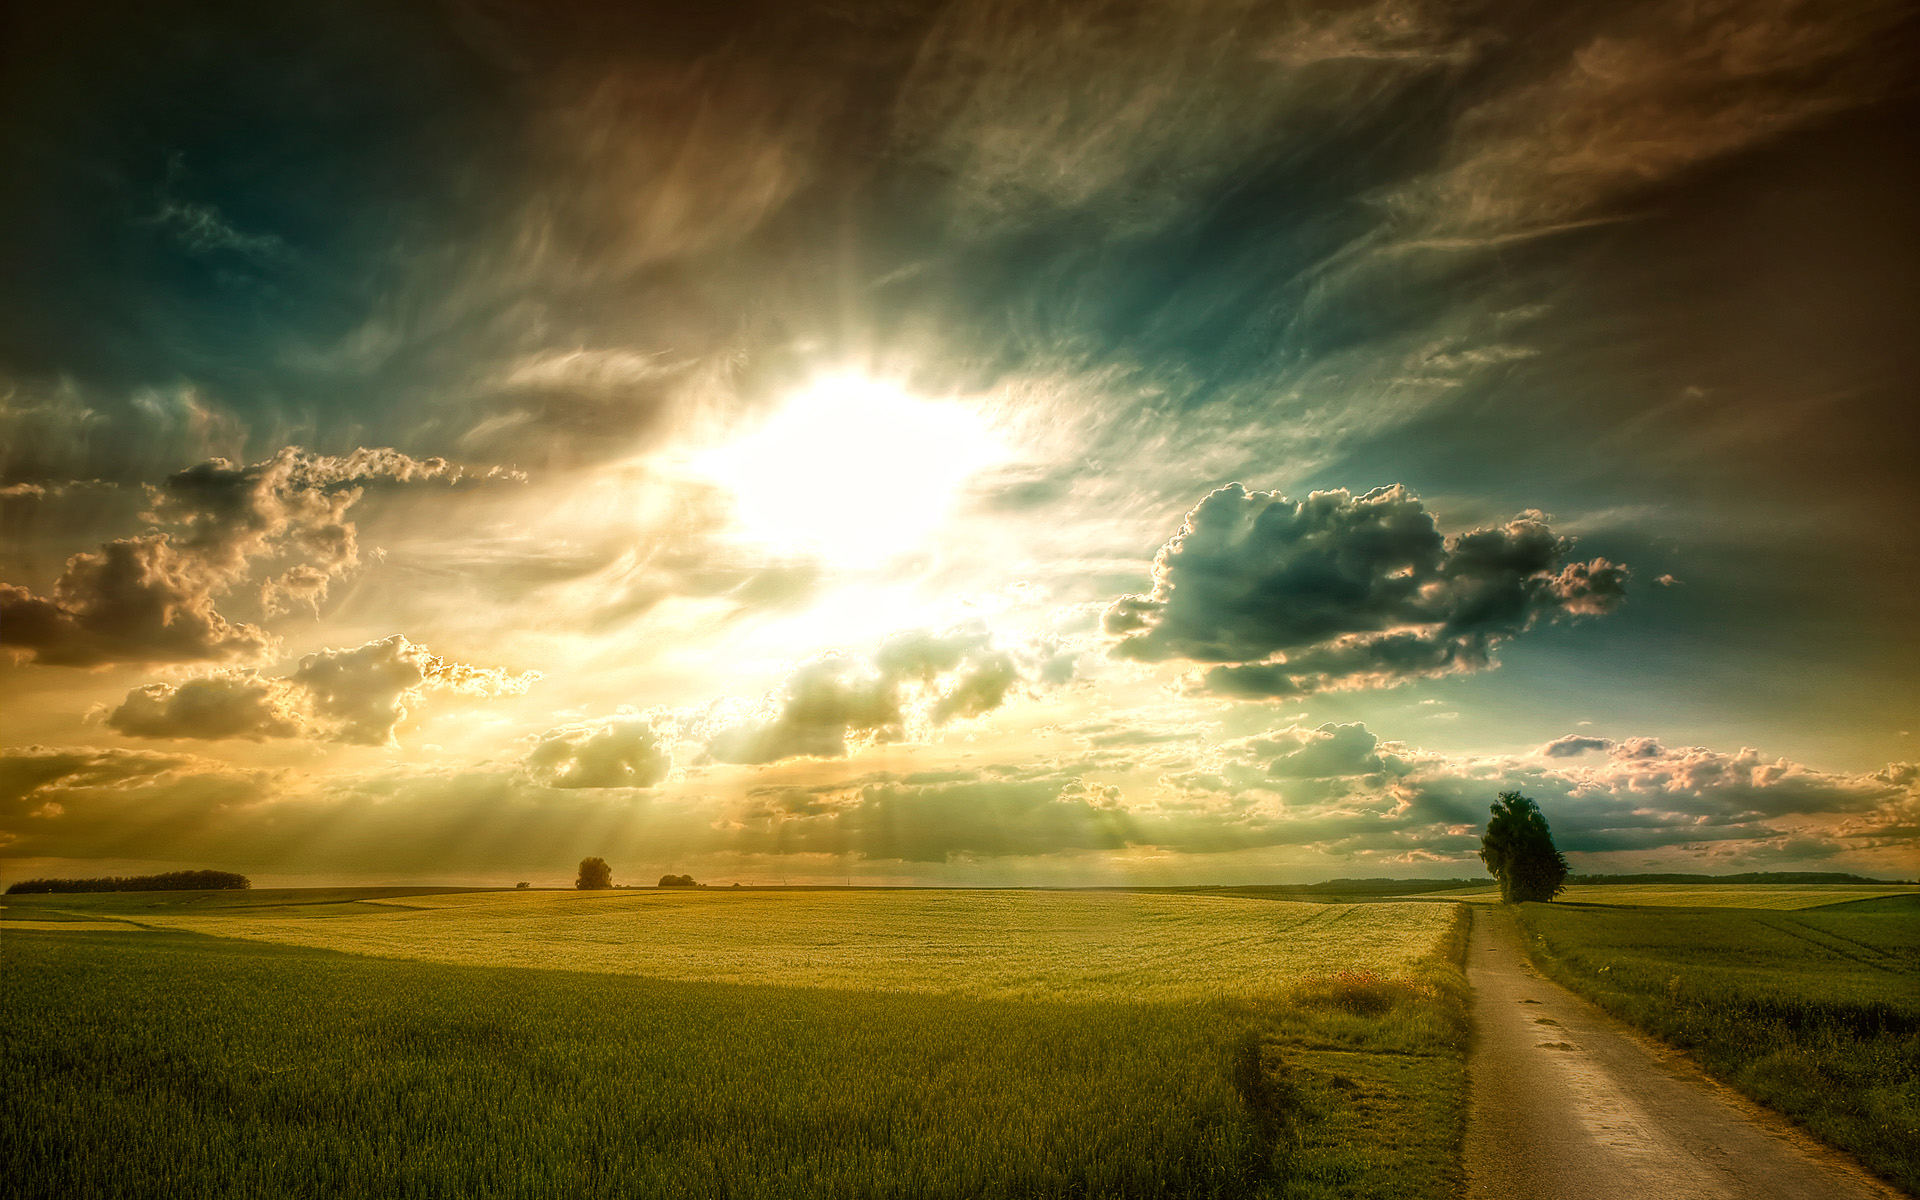 powerful sunlight coming through the clouds in a grassy field with a road nearby